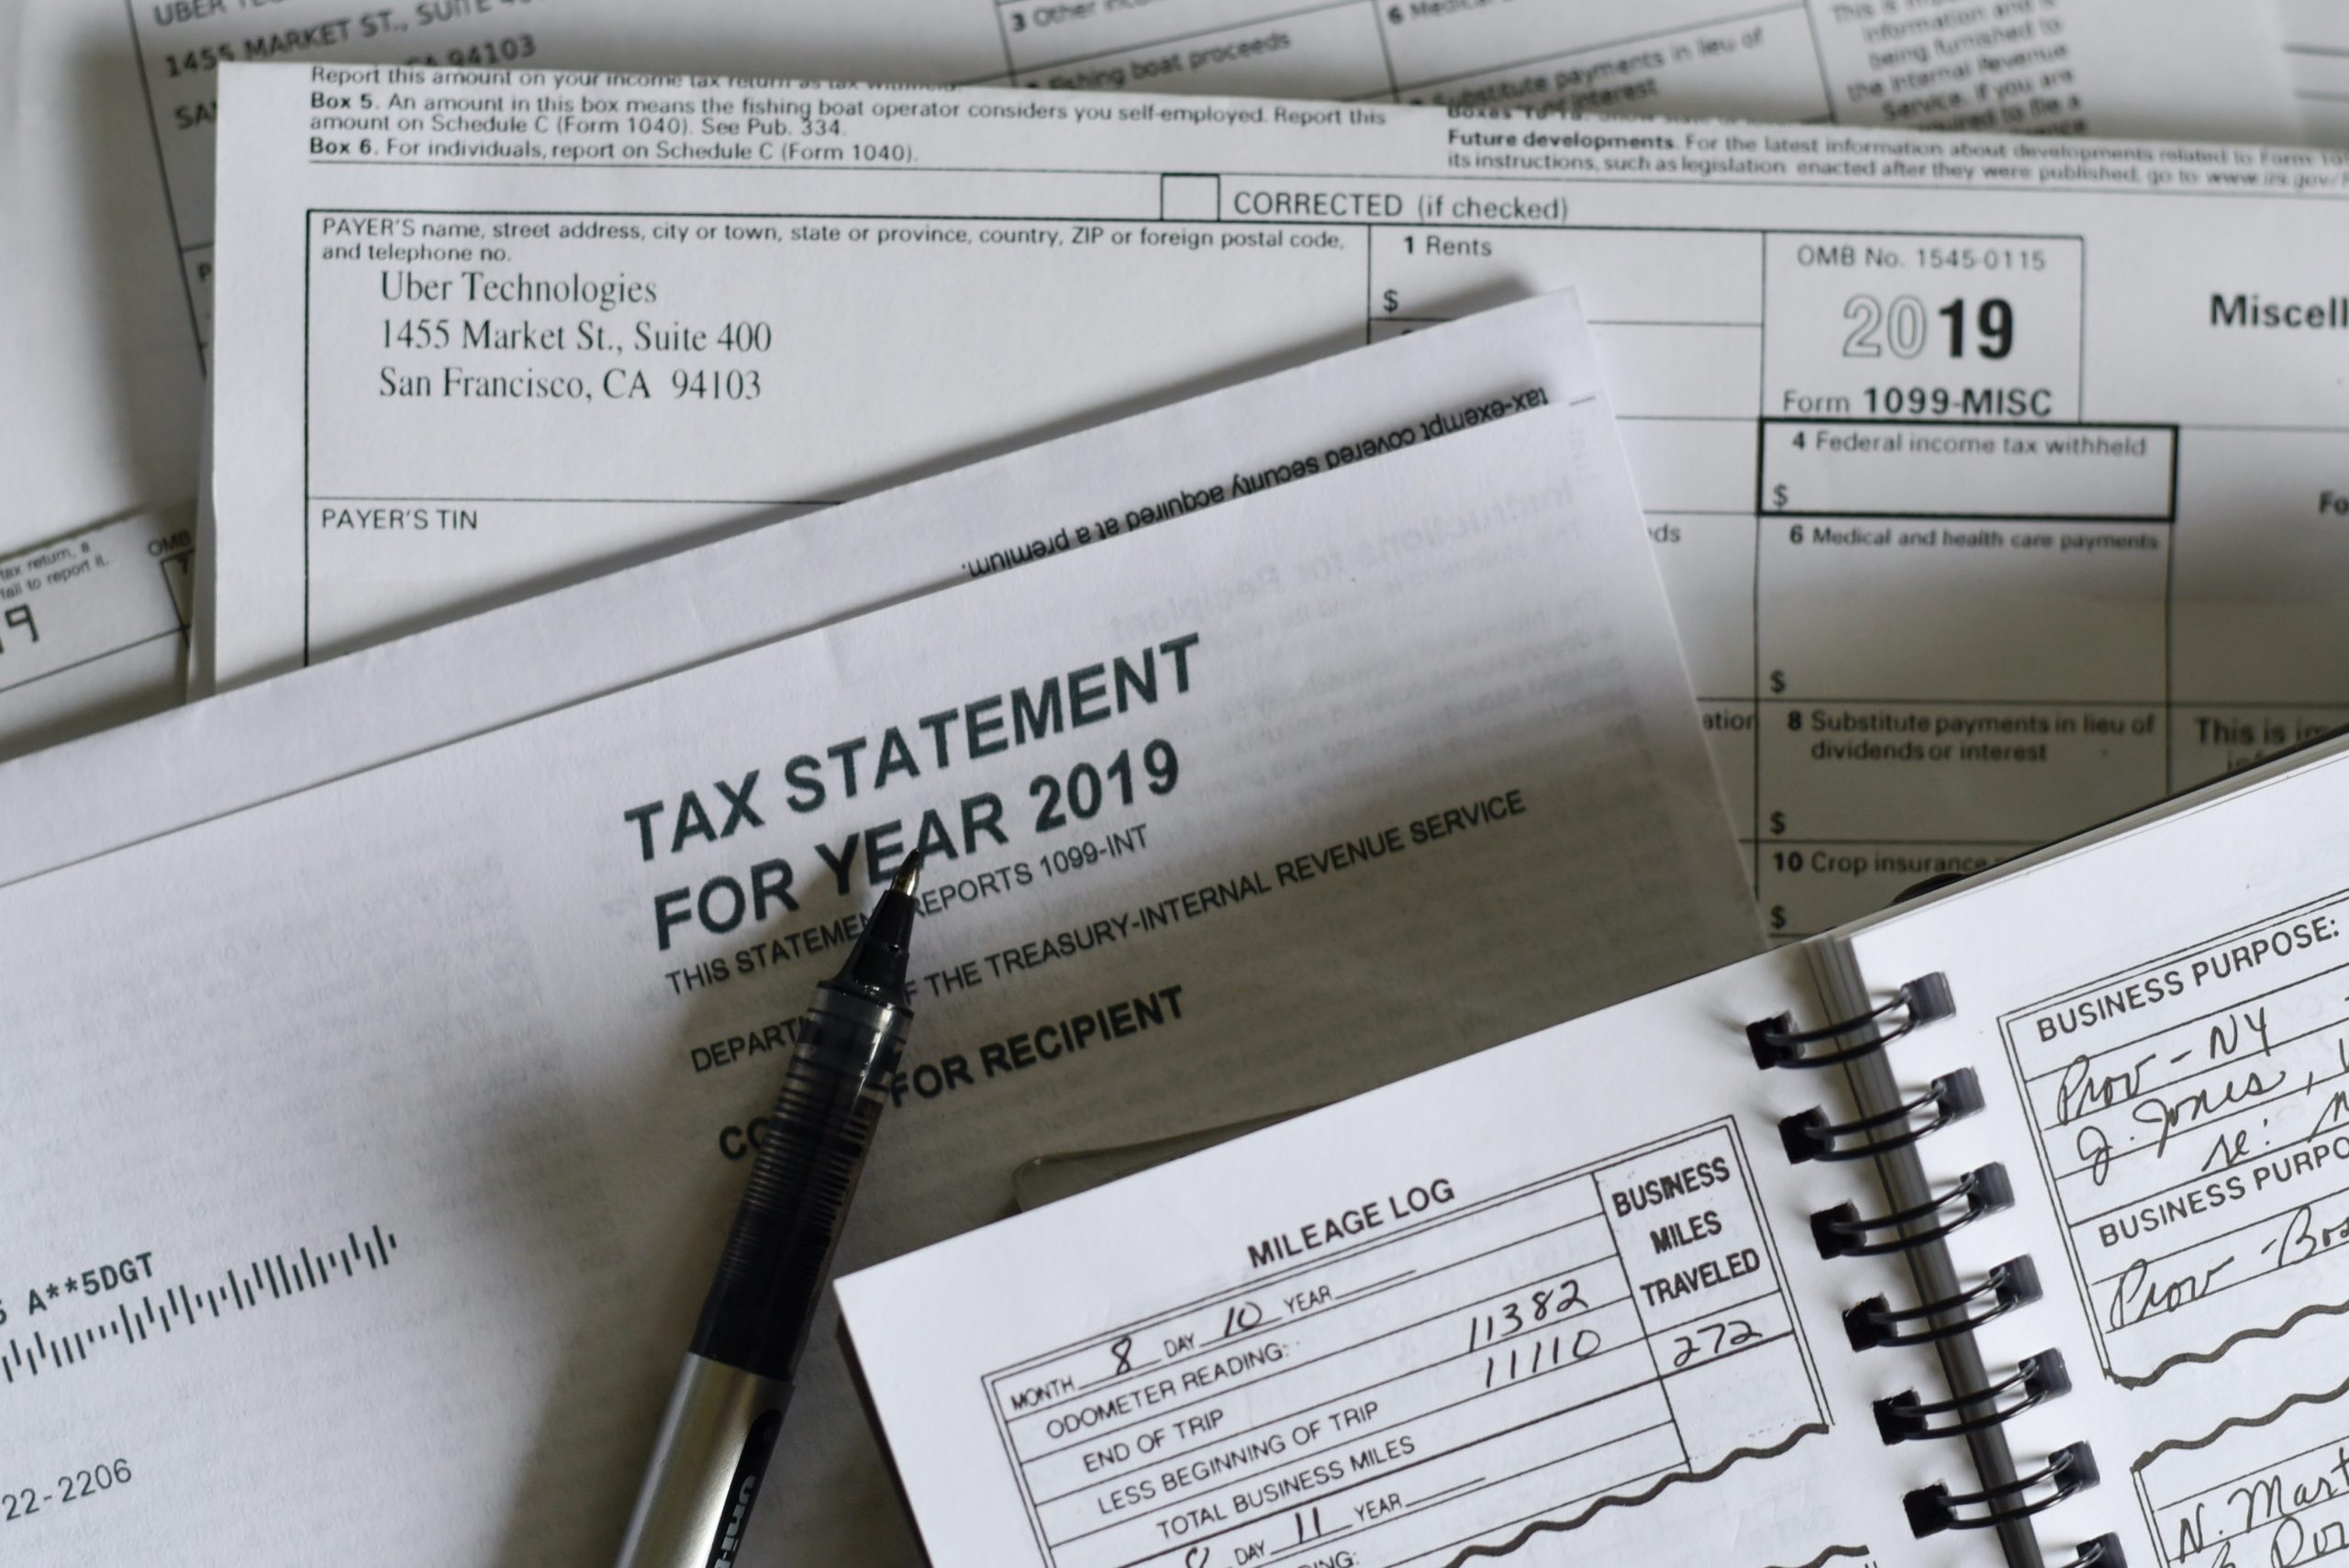 2019 tax statement